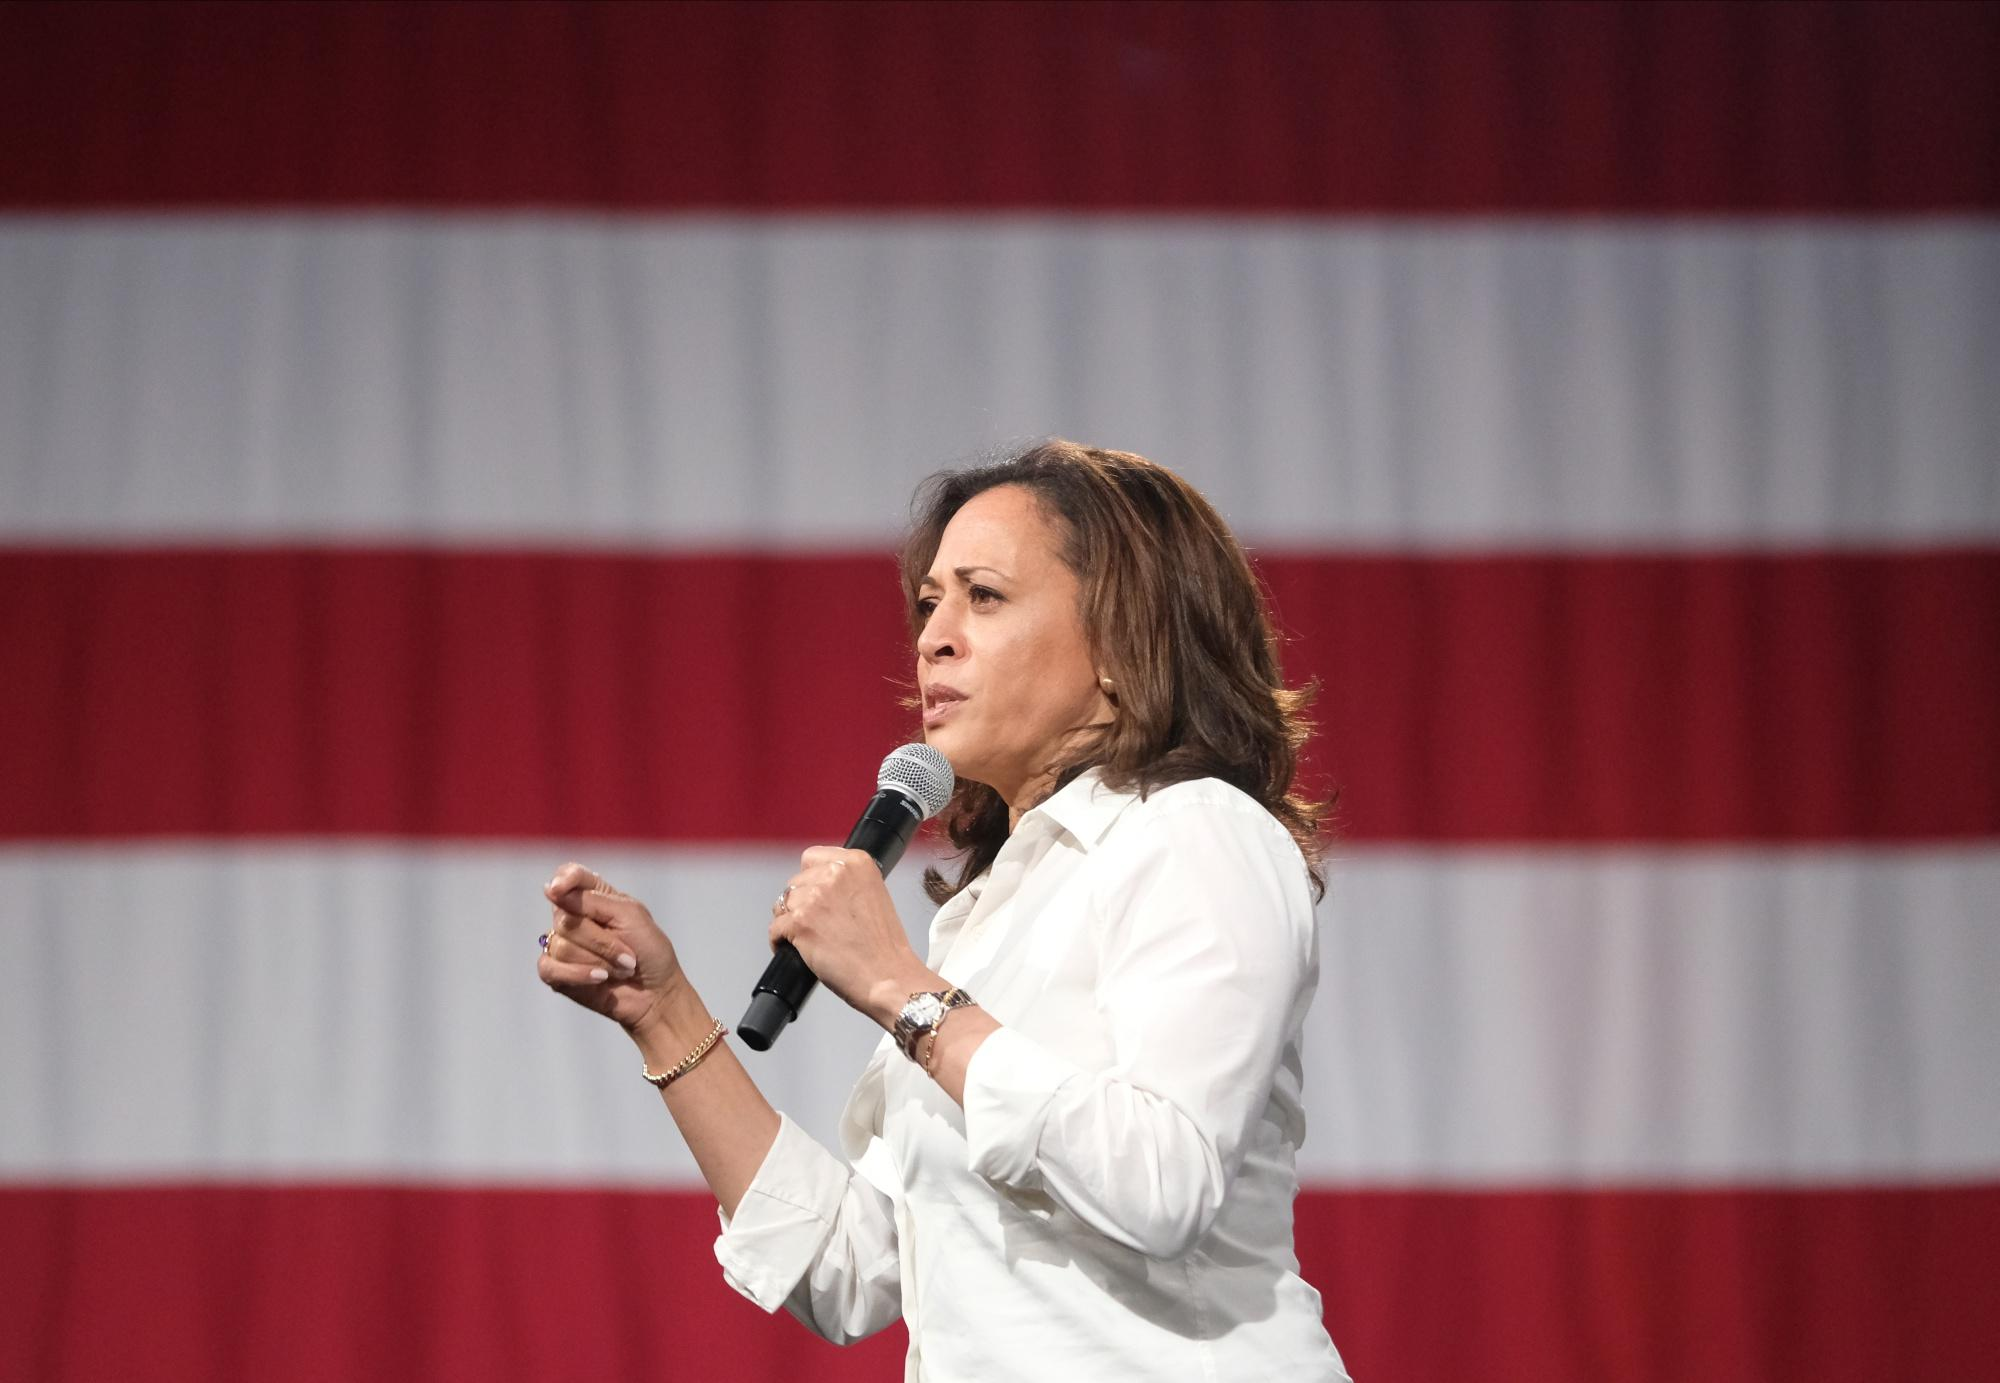 FREE FALLING: Democrat Support for Kamala Harris PLUMMETS 12% Since June